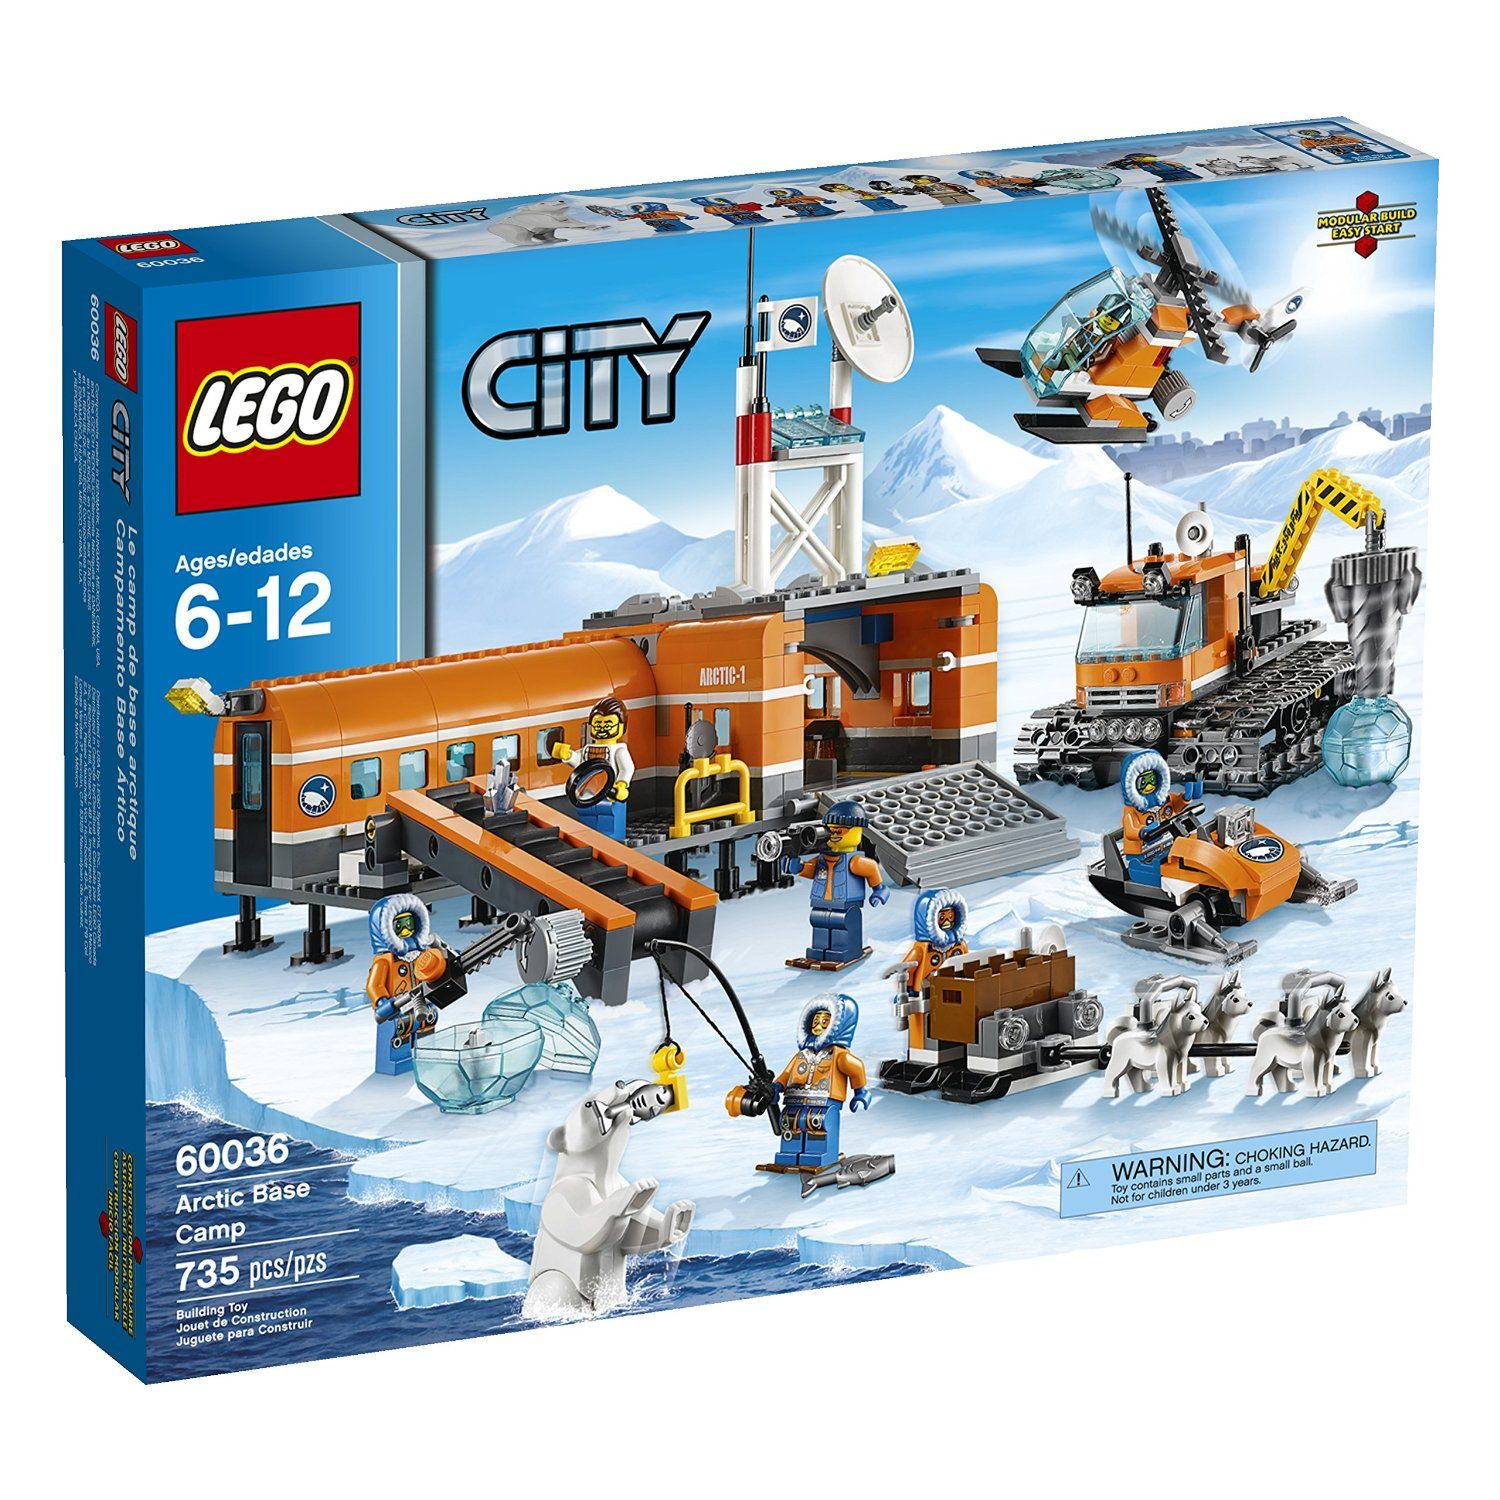 Pin lego 60032 city the lego summer wave in official images on - Amazon Com Lego City Arctic Base Camp 60036 Building Toy Toys Games